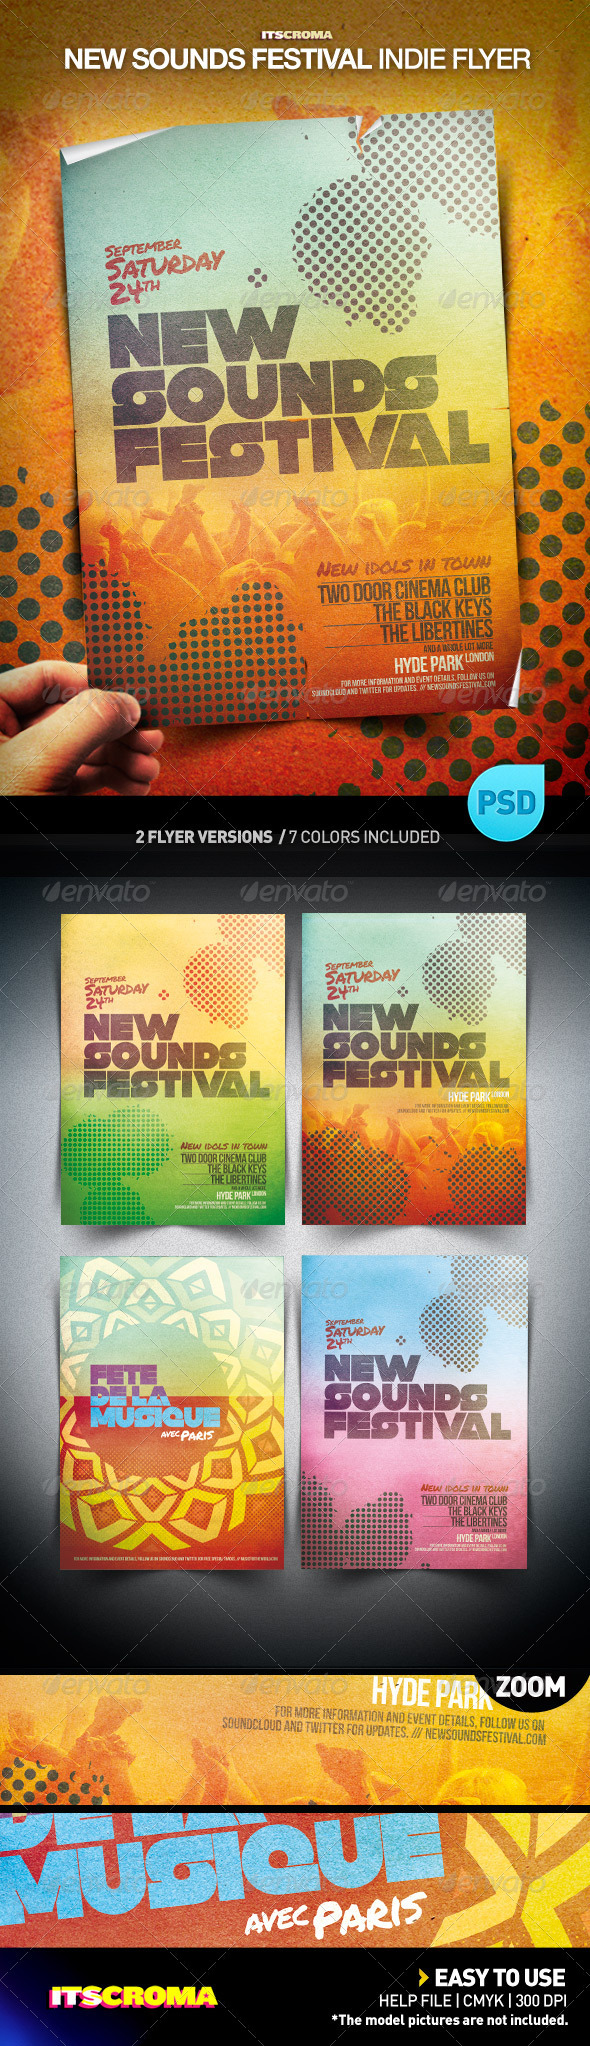 Indie Flyer Poster - New Sounds Festival - Concerts Events